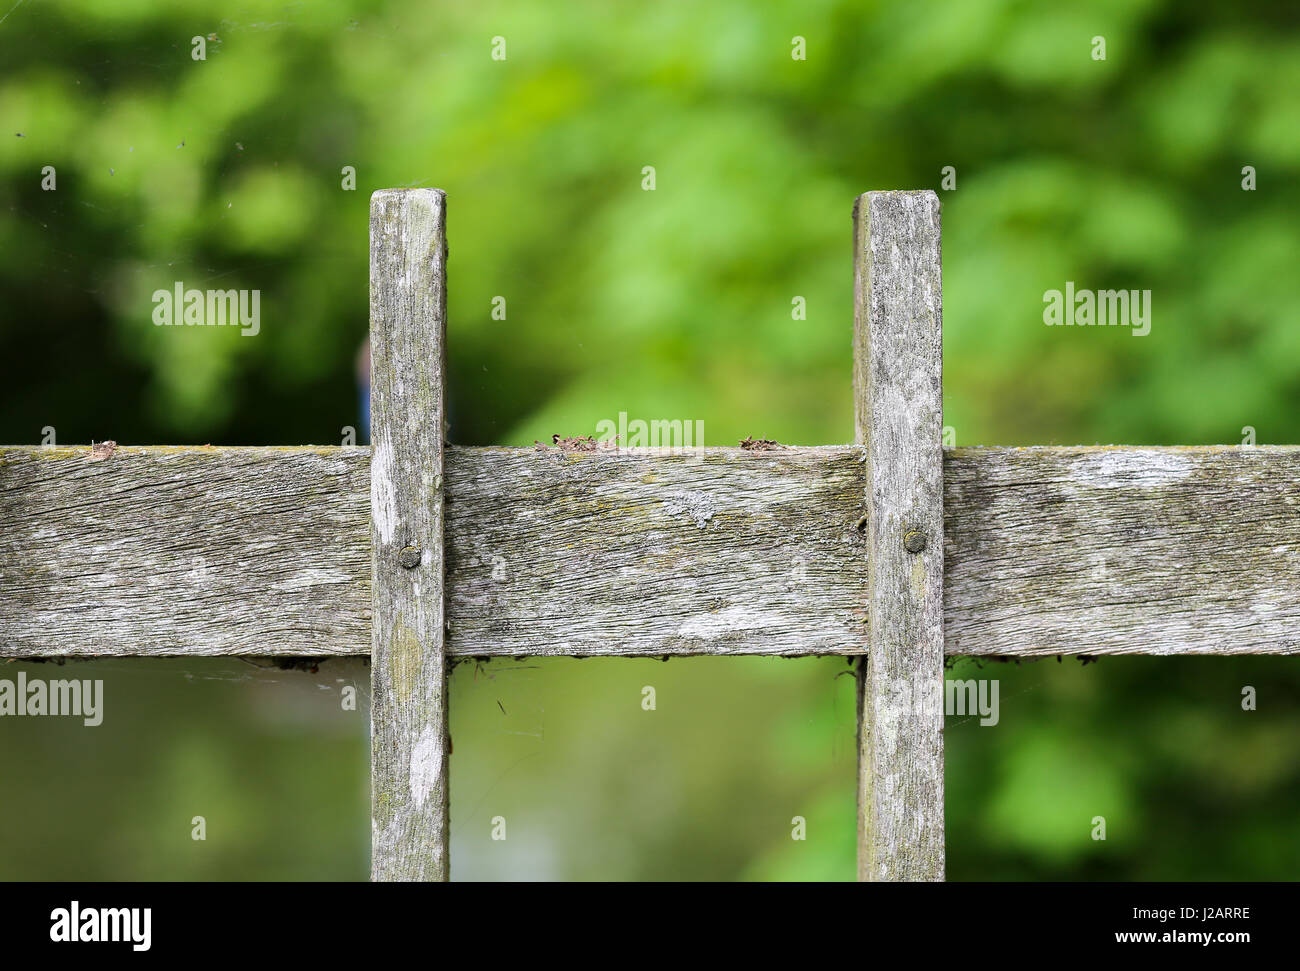 Old wooden bridge fence plank covered in lichen and moss and green woodland background Stock Photo